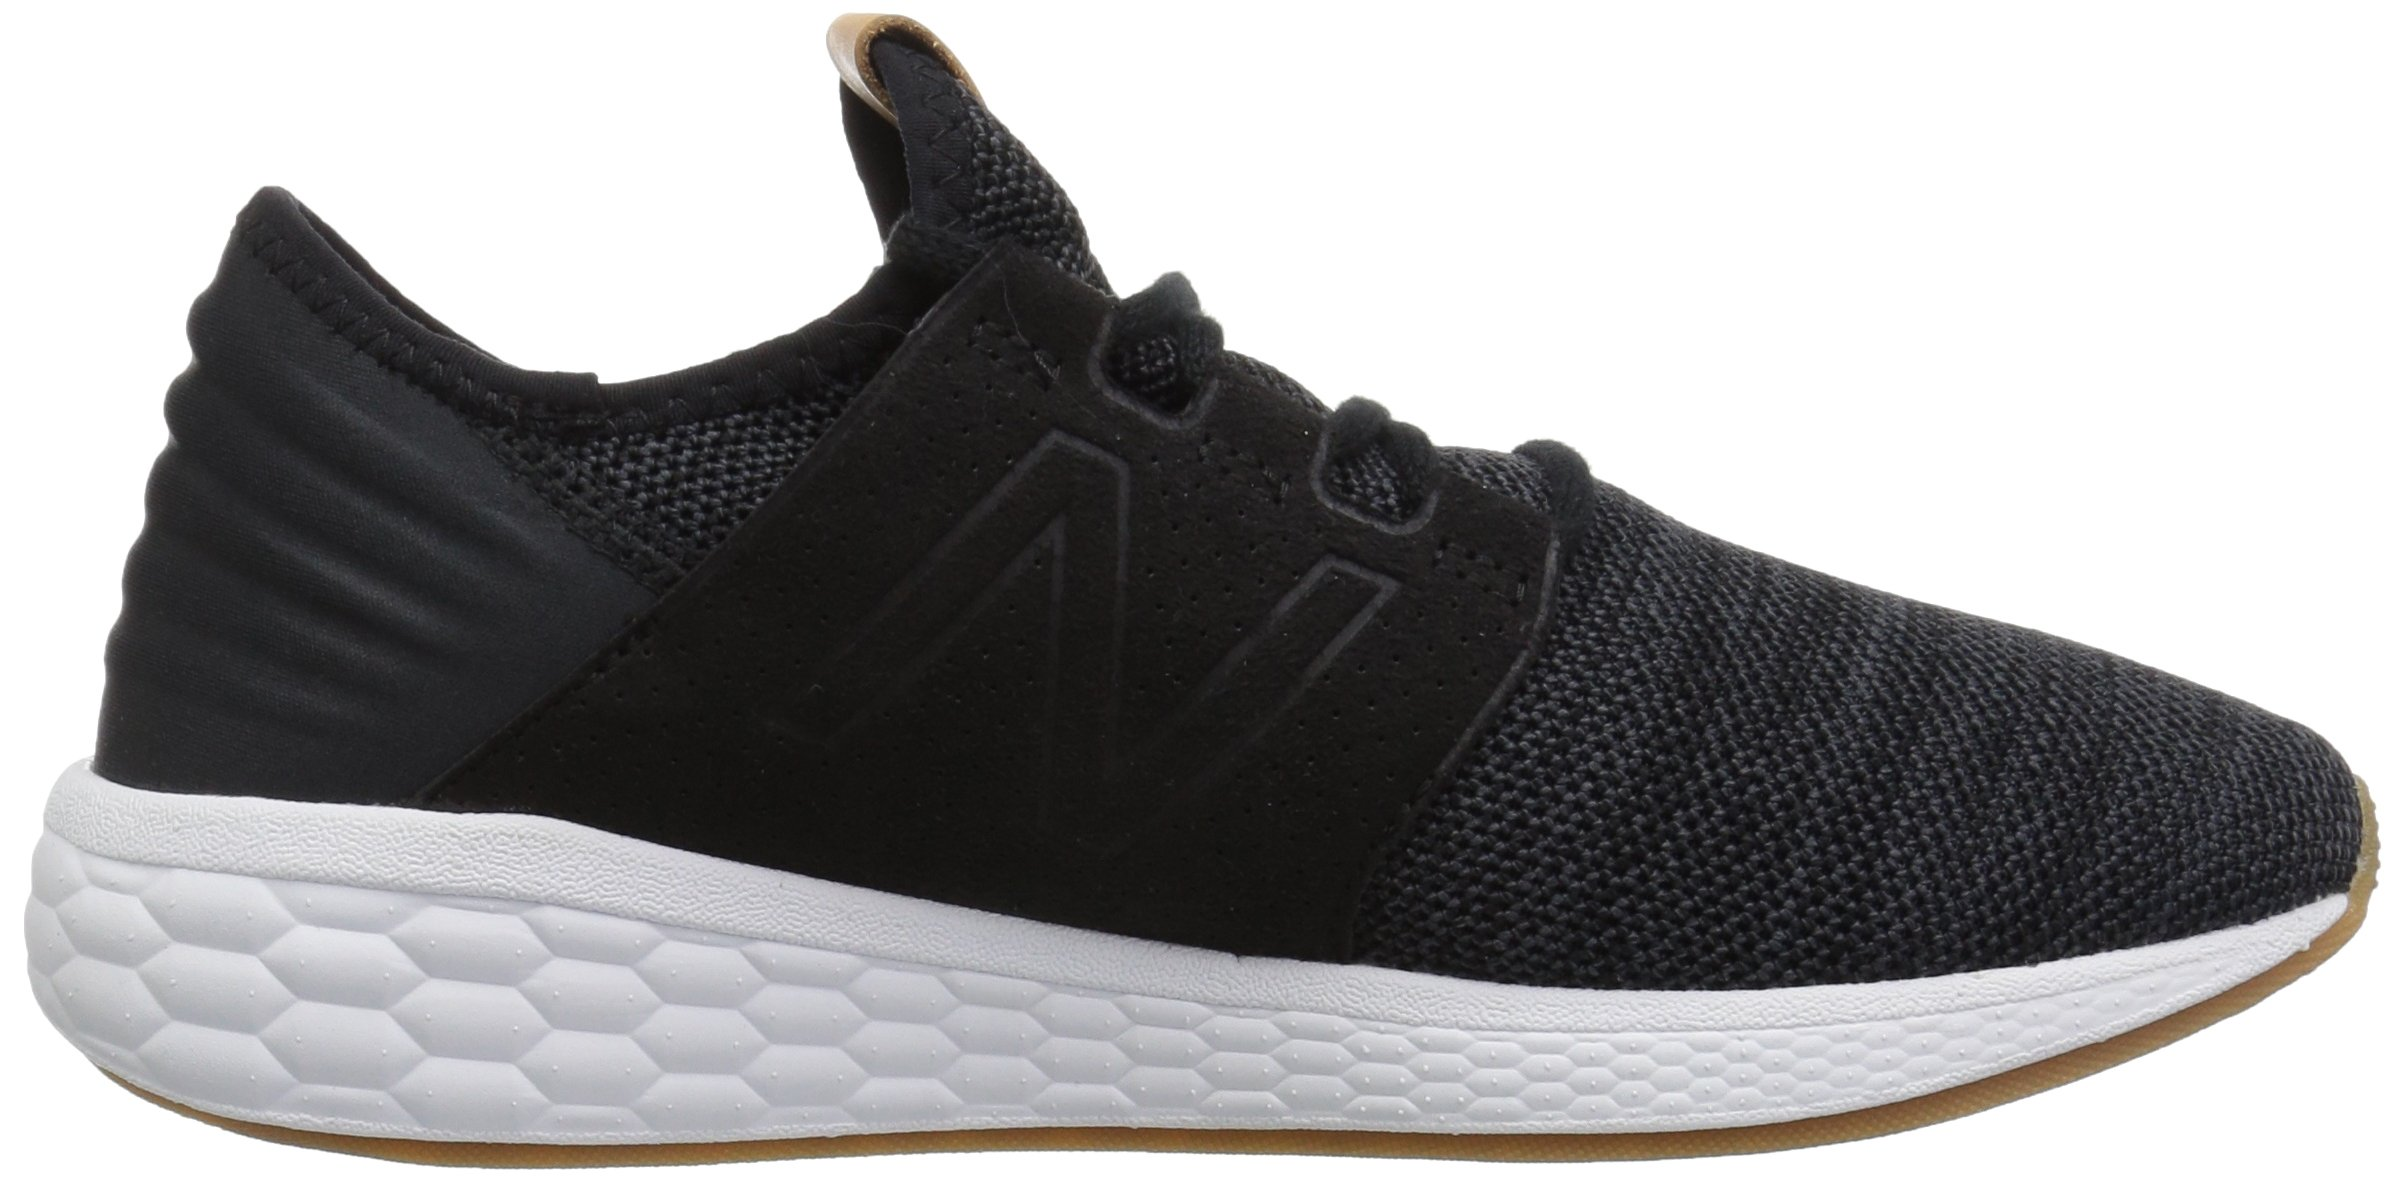 New Balance Women's Cruz V2 Fresh Foam Running Shoe, Black/White, 5 B US